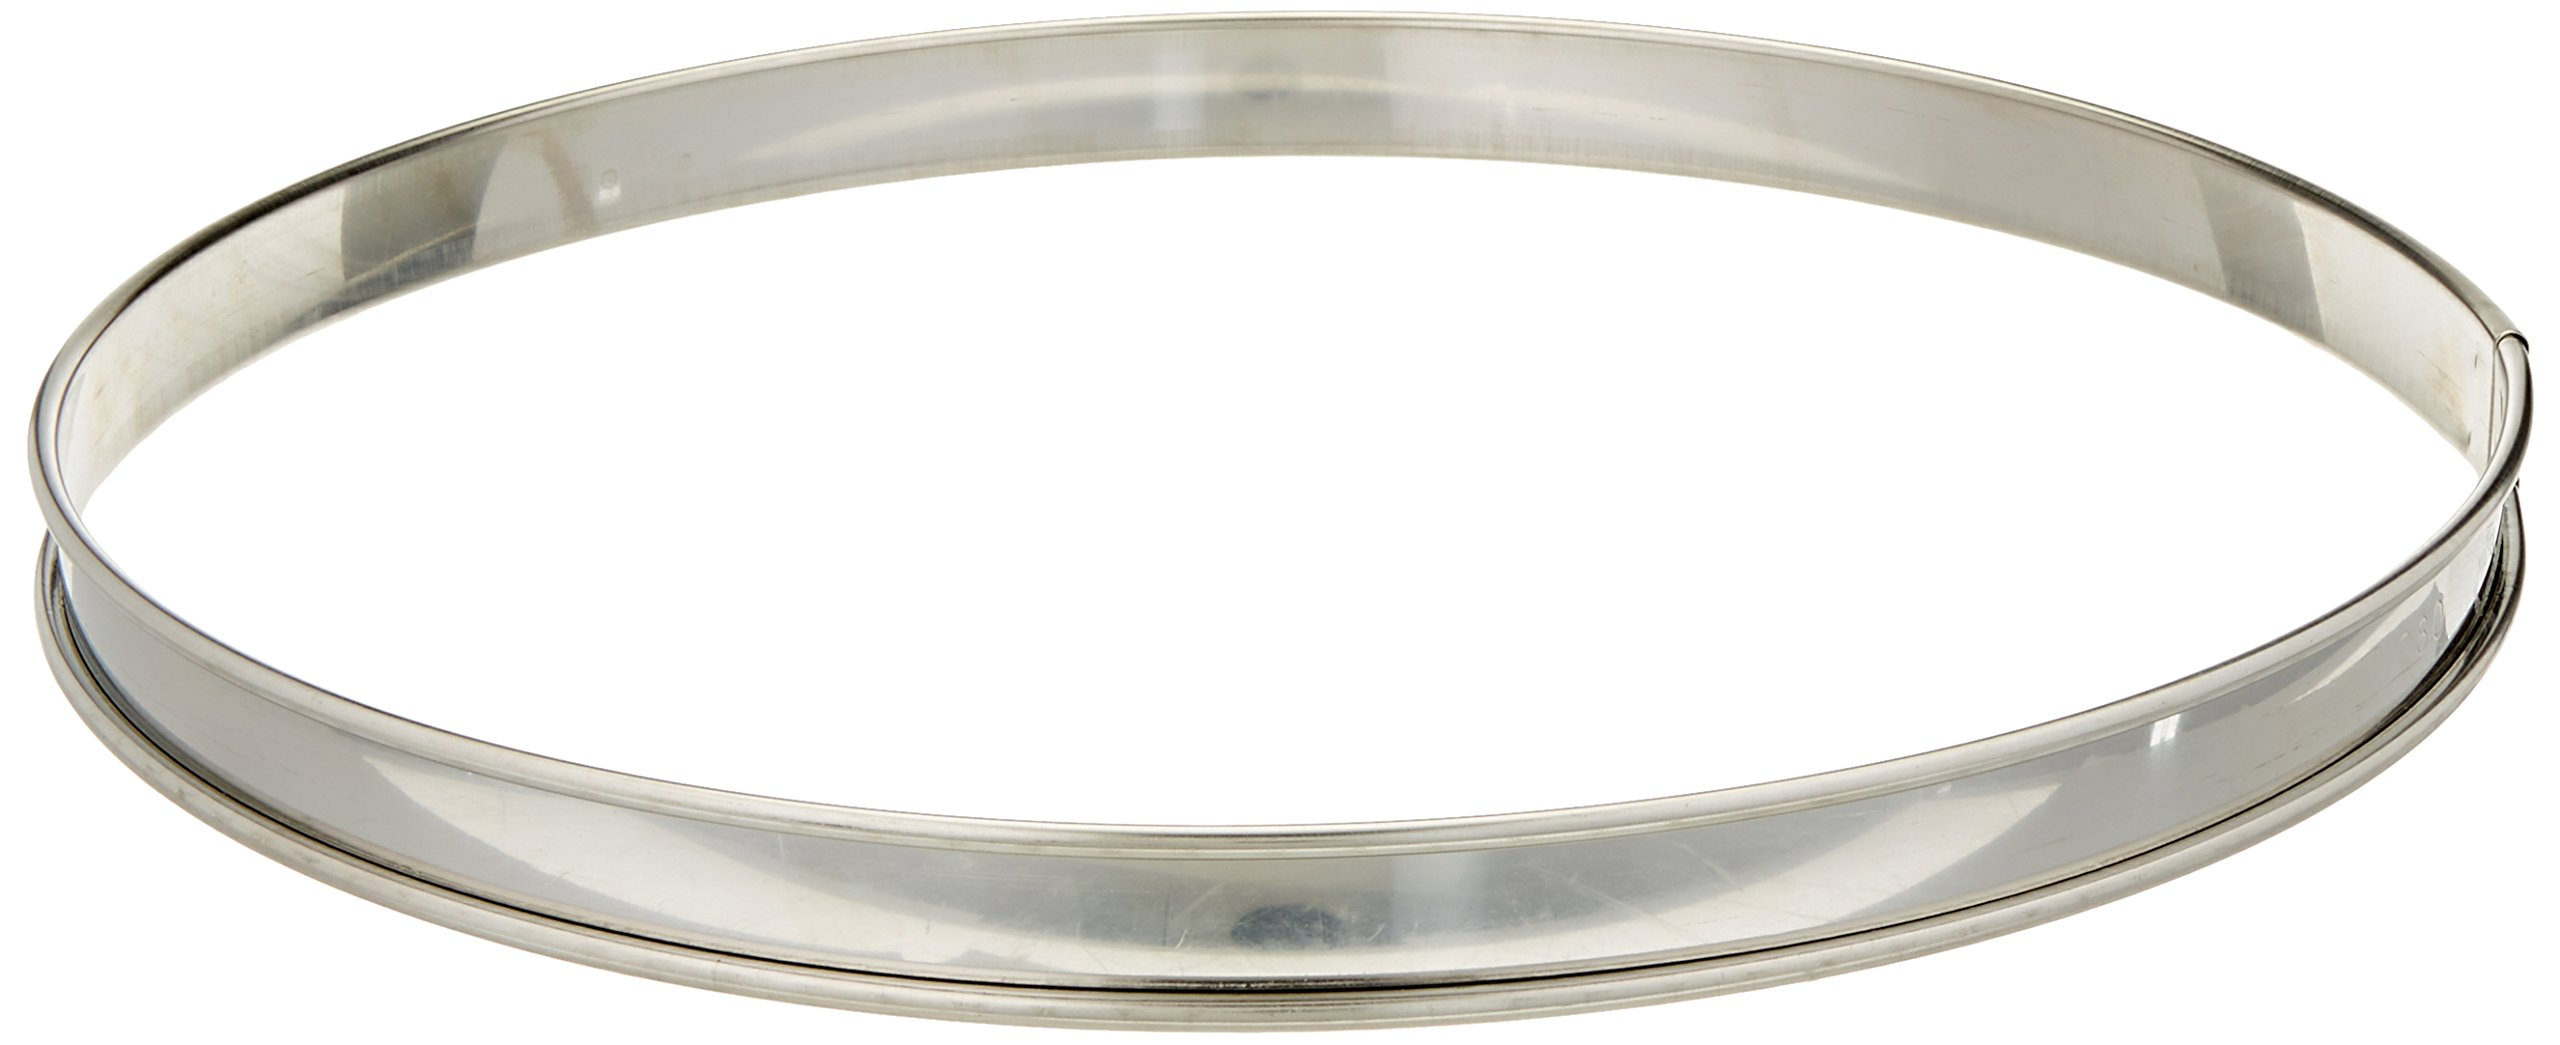 Matfer Bourgeat 371617 Plain Tart Ring, Silver